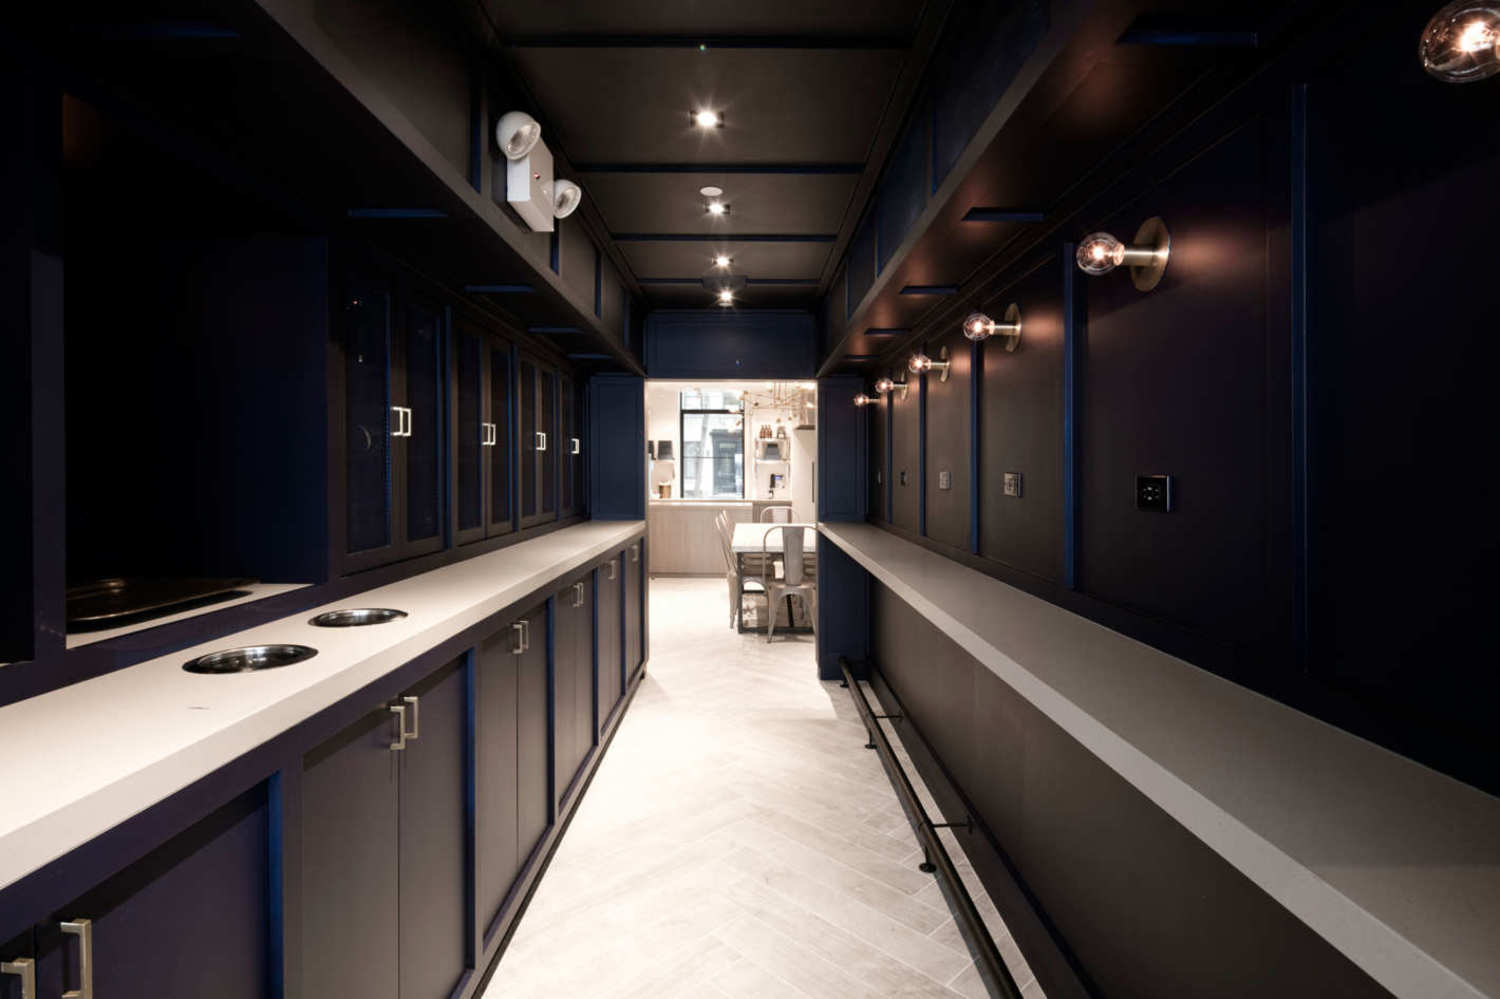 The connecting passageway is equipped with standing ledges and wall outlets — the only ones in the entire space.